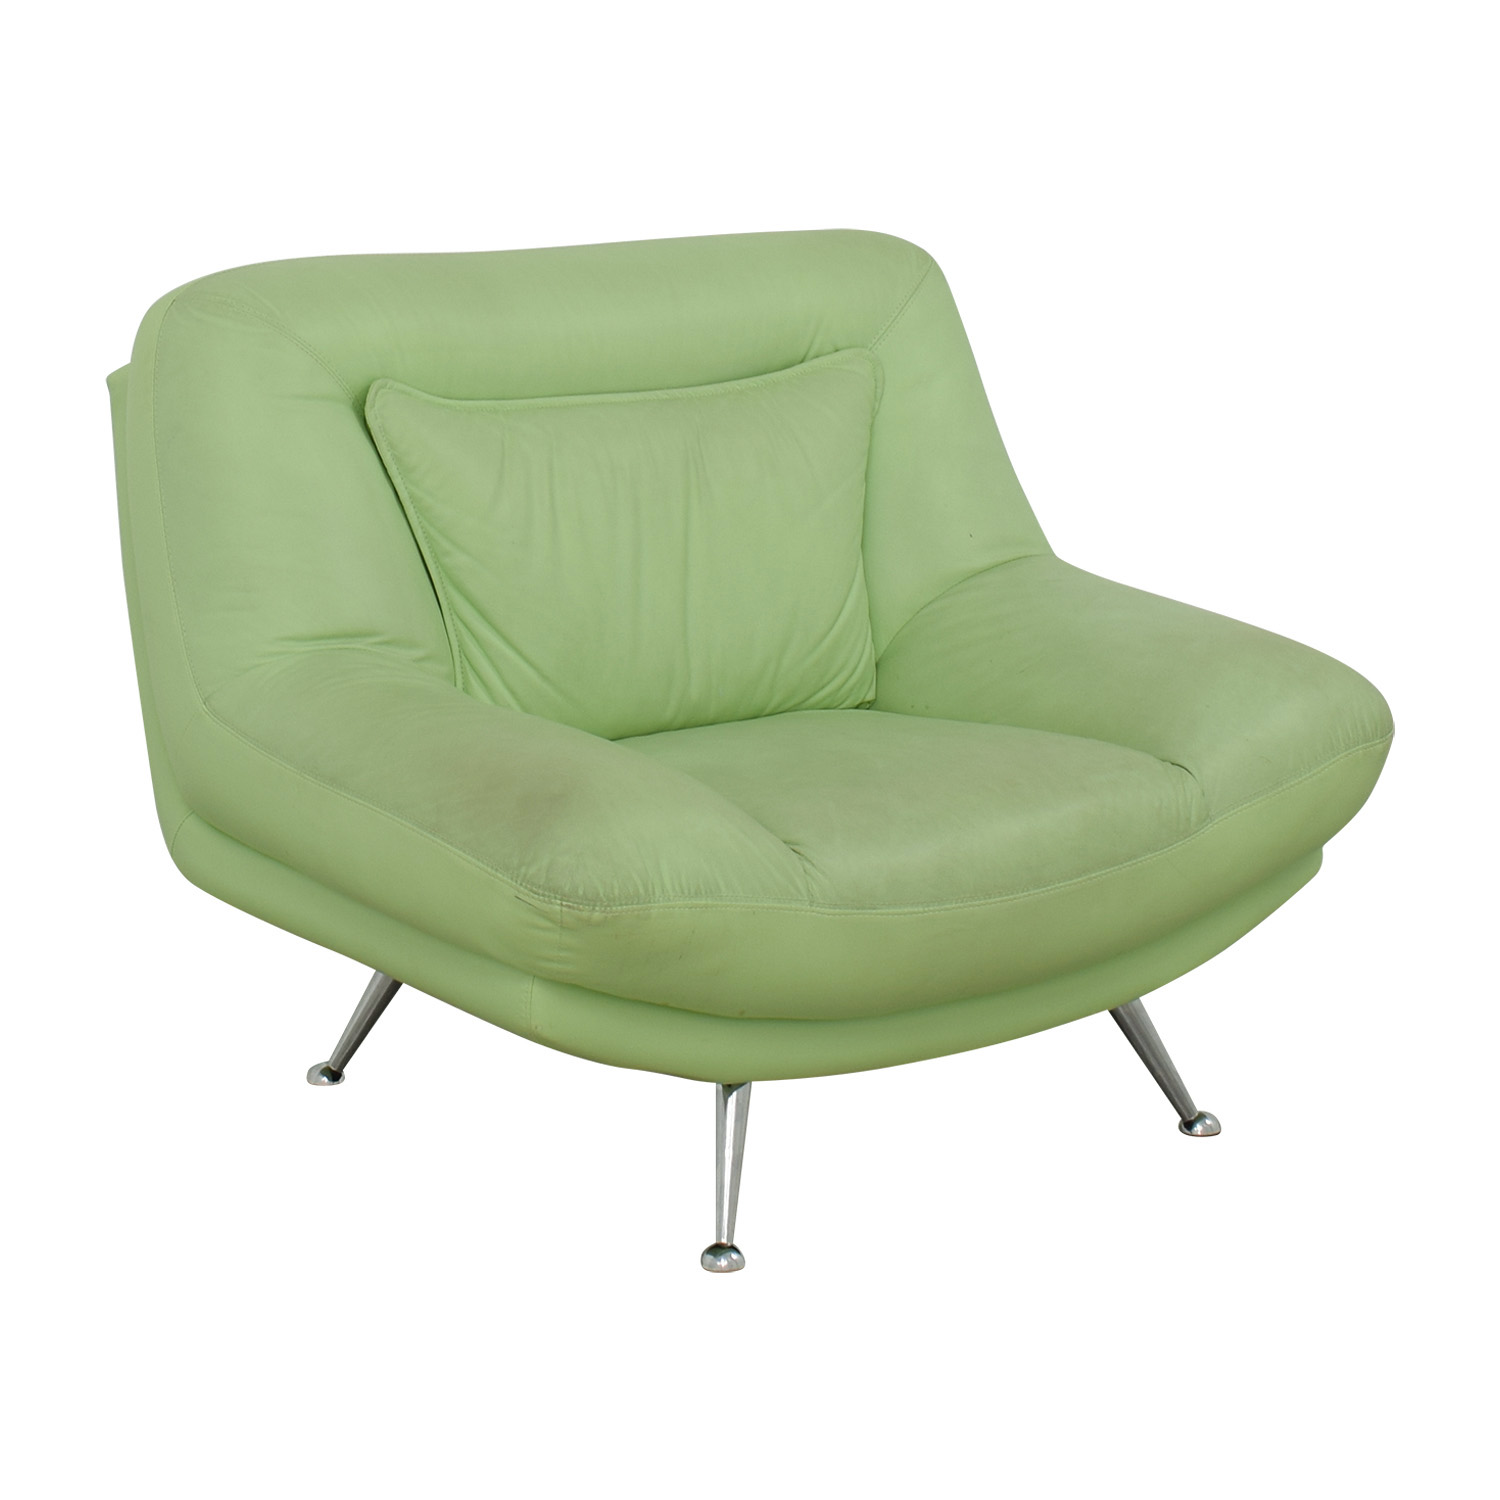 Italian Surf Green Leather Accent Chair surf green